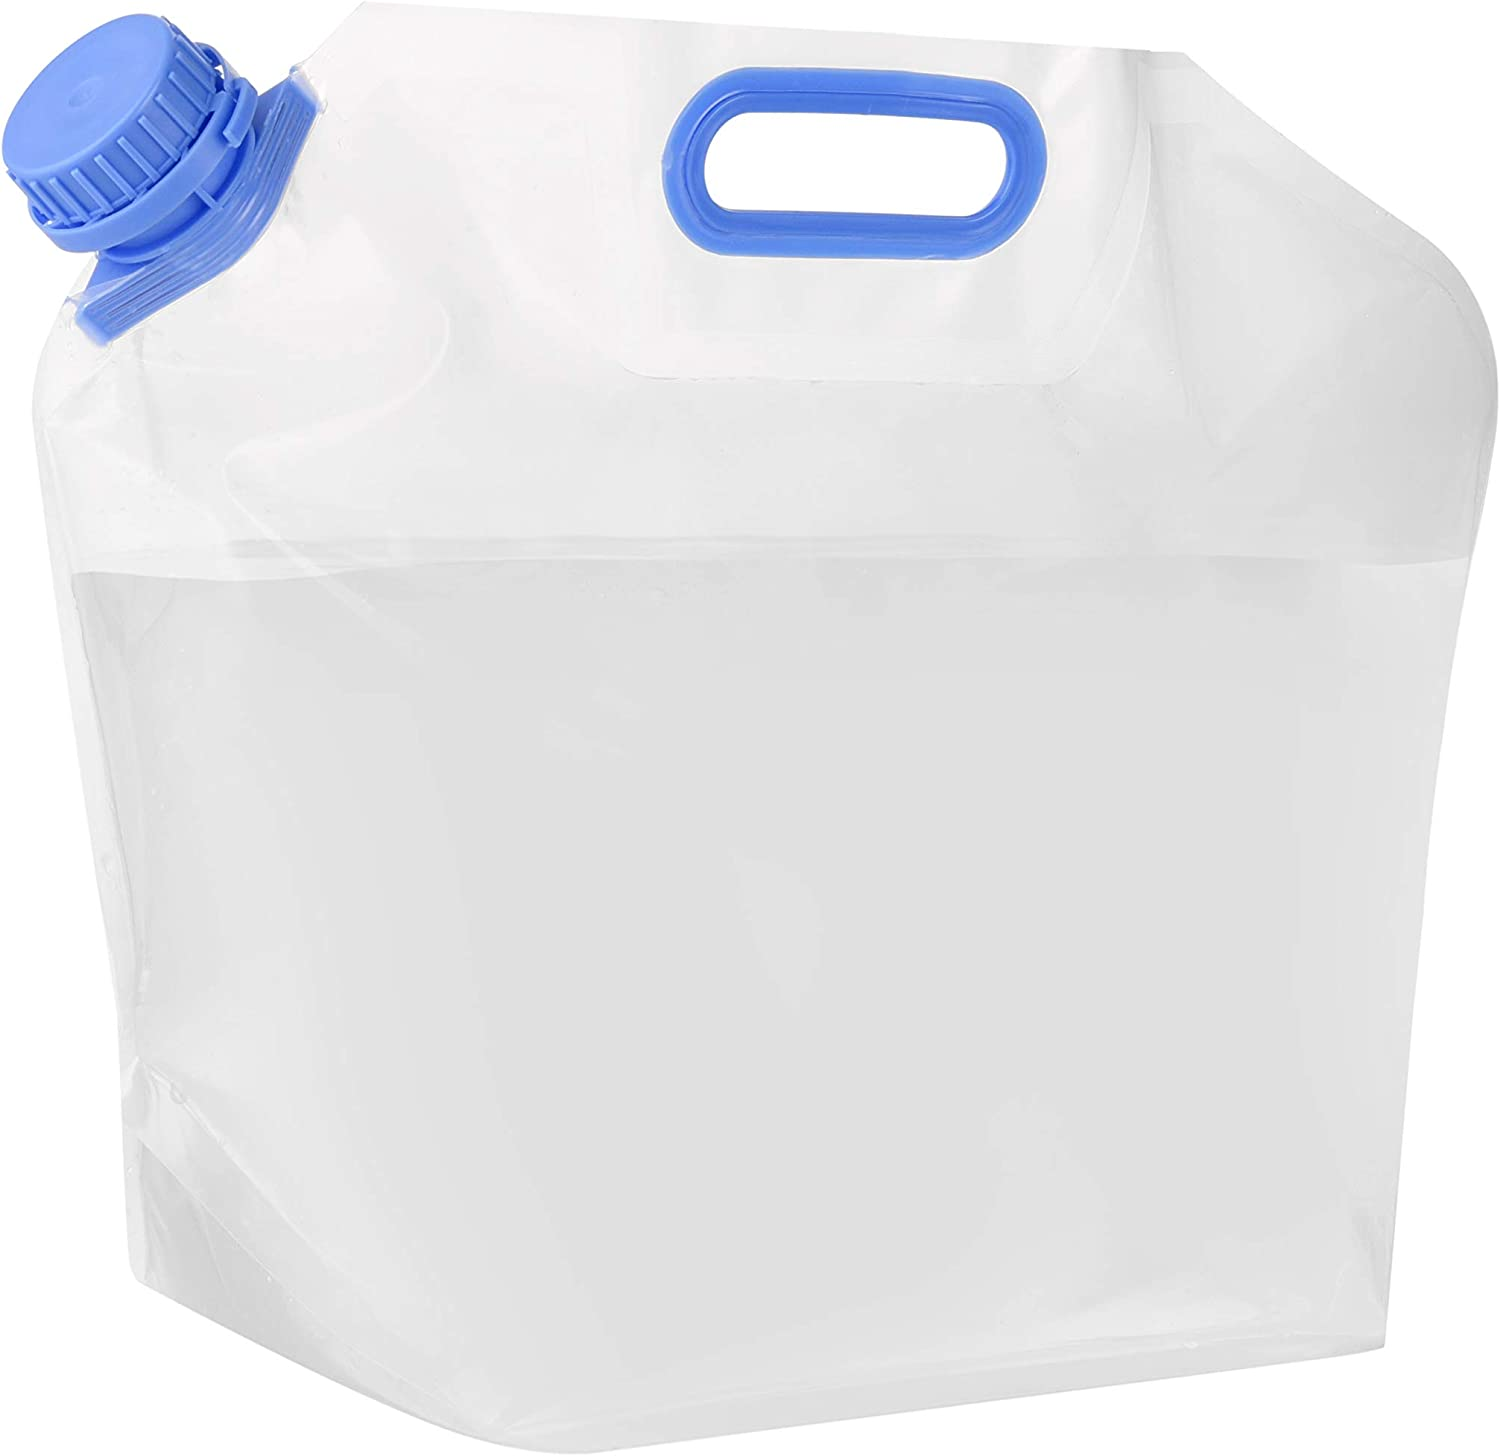 BPA-Free Folding Collapse/Water/Container with Spigot AHIER Collapsible Water Container Food-Grade Camping Water Storage Carrier Jug for Outdoor Hiking Emergency 10L